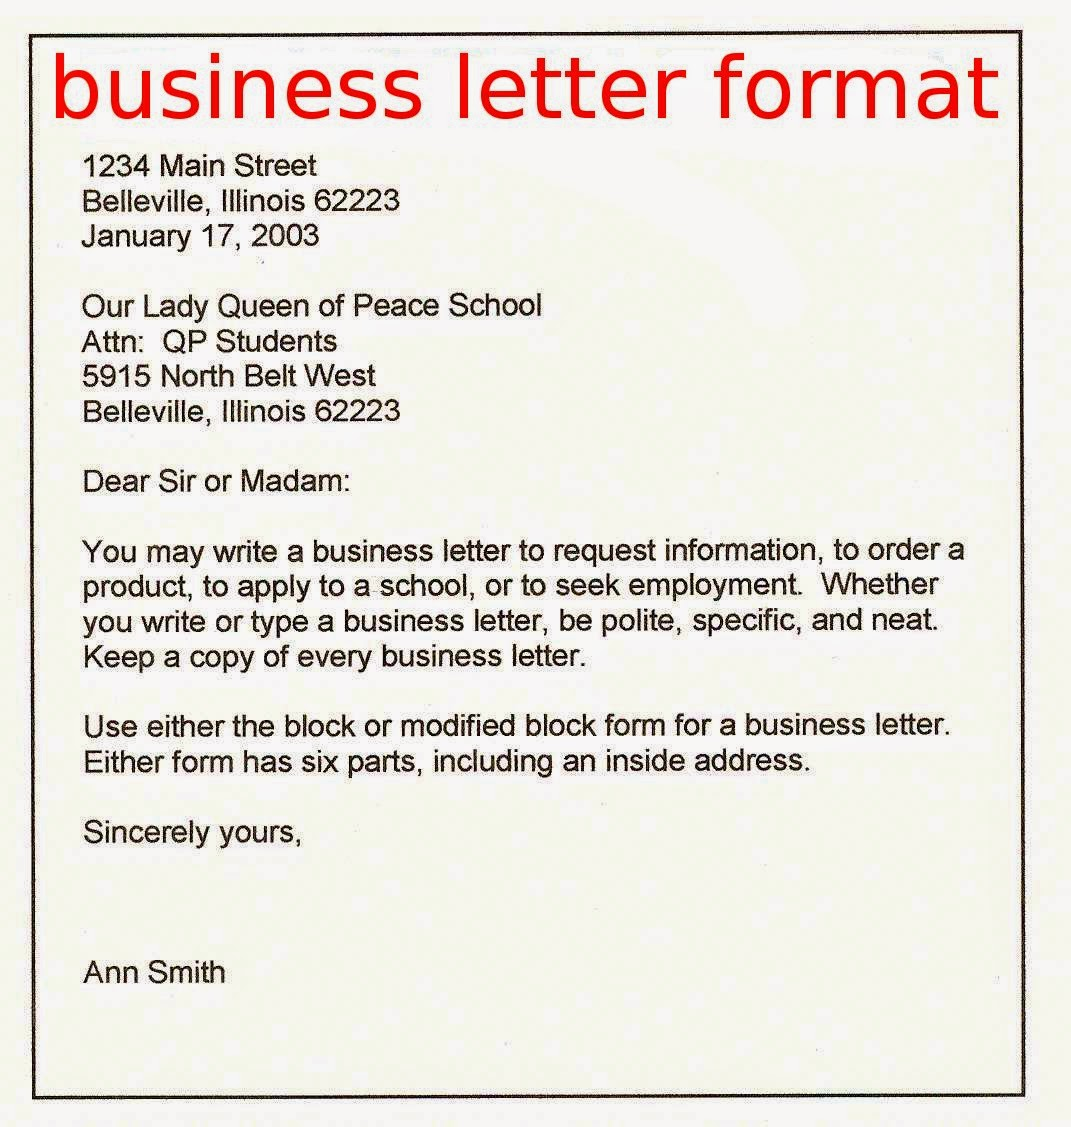 Bad News Business Letter Example Writing Essay Introduction